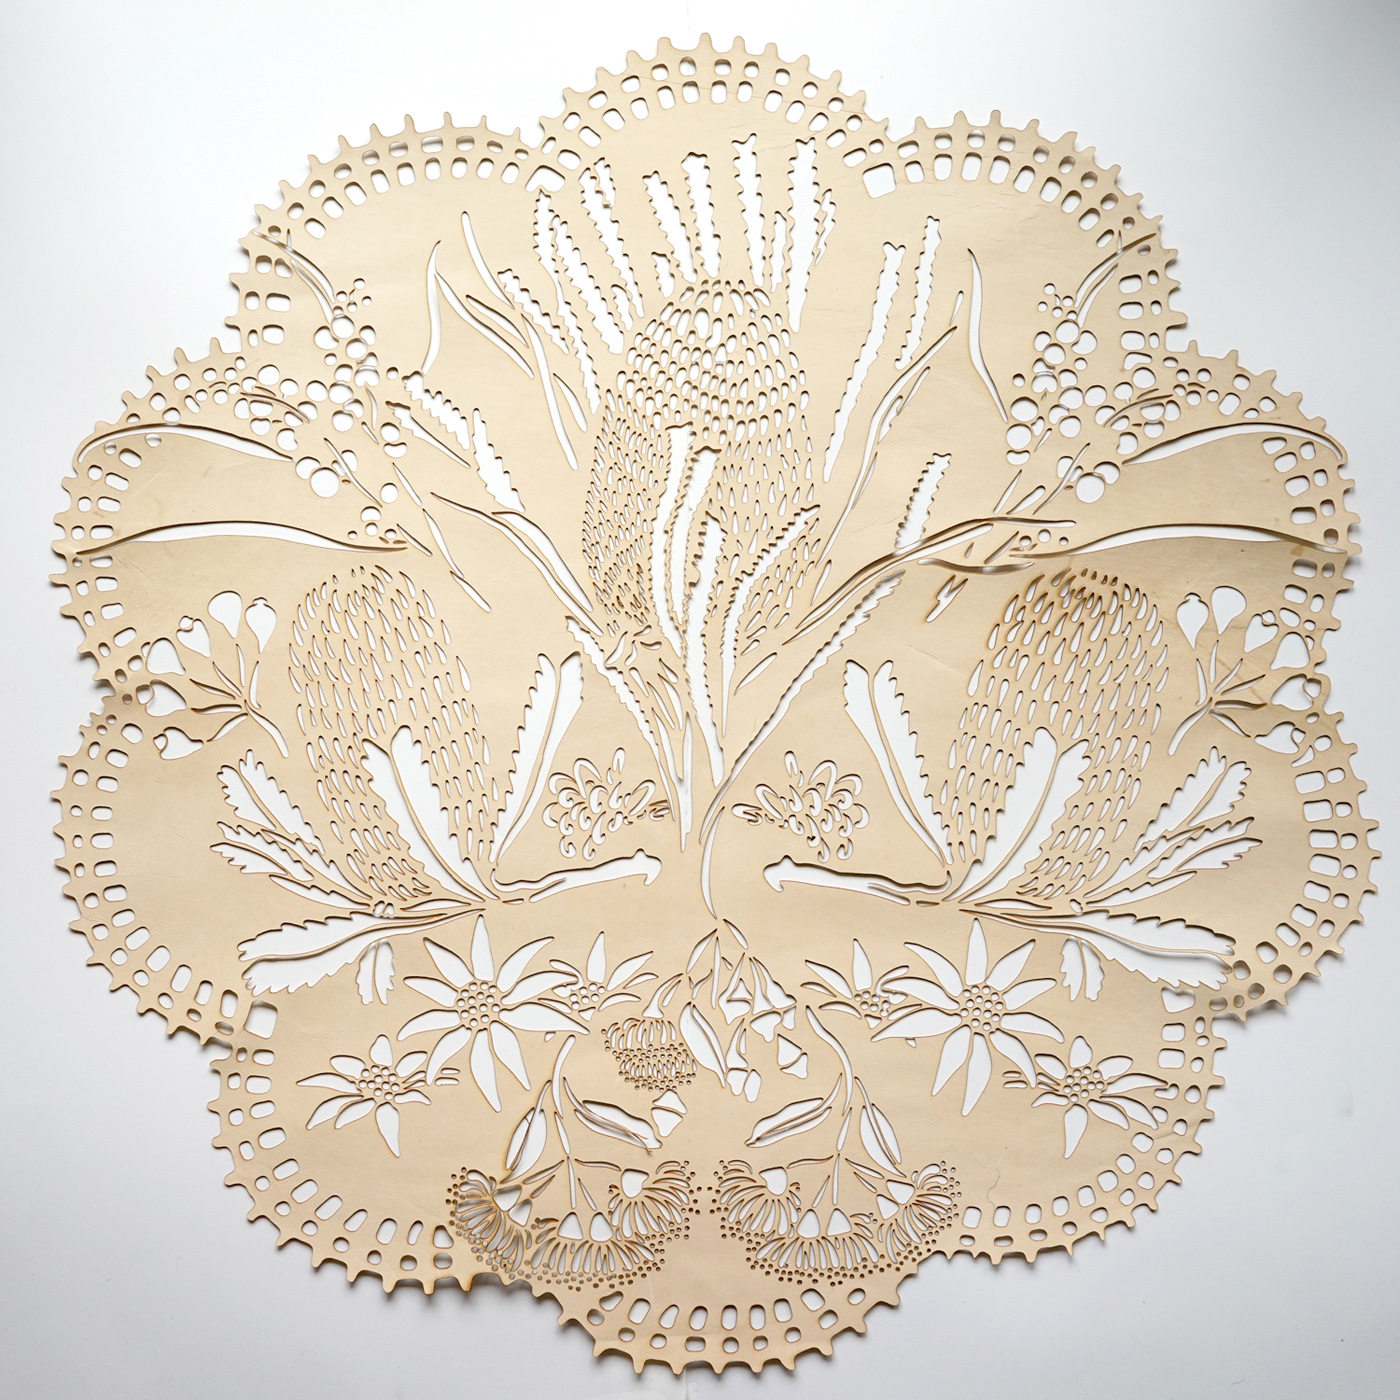 My work Verdant Skin has been selected as a finalist in the Pro Hart Outback Art Prize at  Broken Hill Regional Gallery . The exhibition is open from the 3rd of August to 23rd of September 2018.    Laser cut from kangaroo leather 'Verdant Skin' distills the outback landscape into the purely decorative. The curl of the leather is unrestrained, maintaining a relationship to the body that was underneath. The intricately cut pattern is reminiscent of lace and doilies, transforming the land into a domestic space